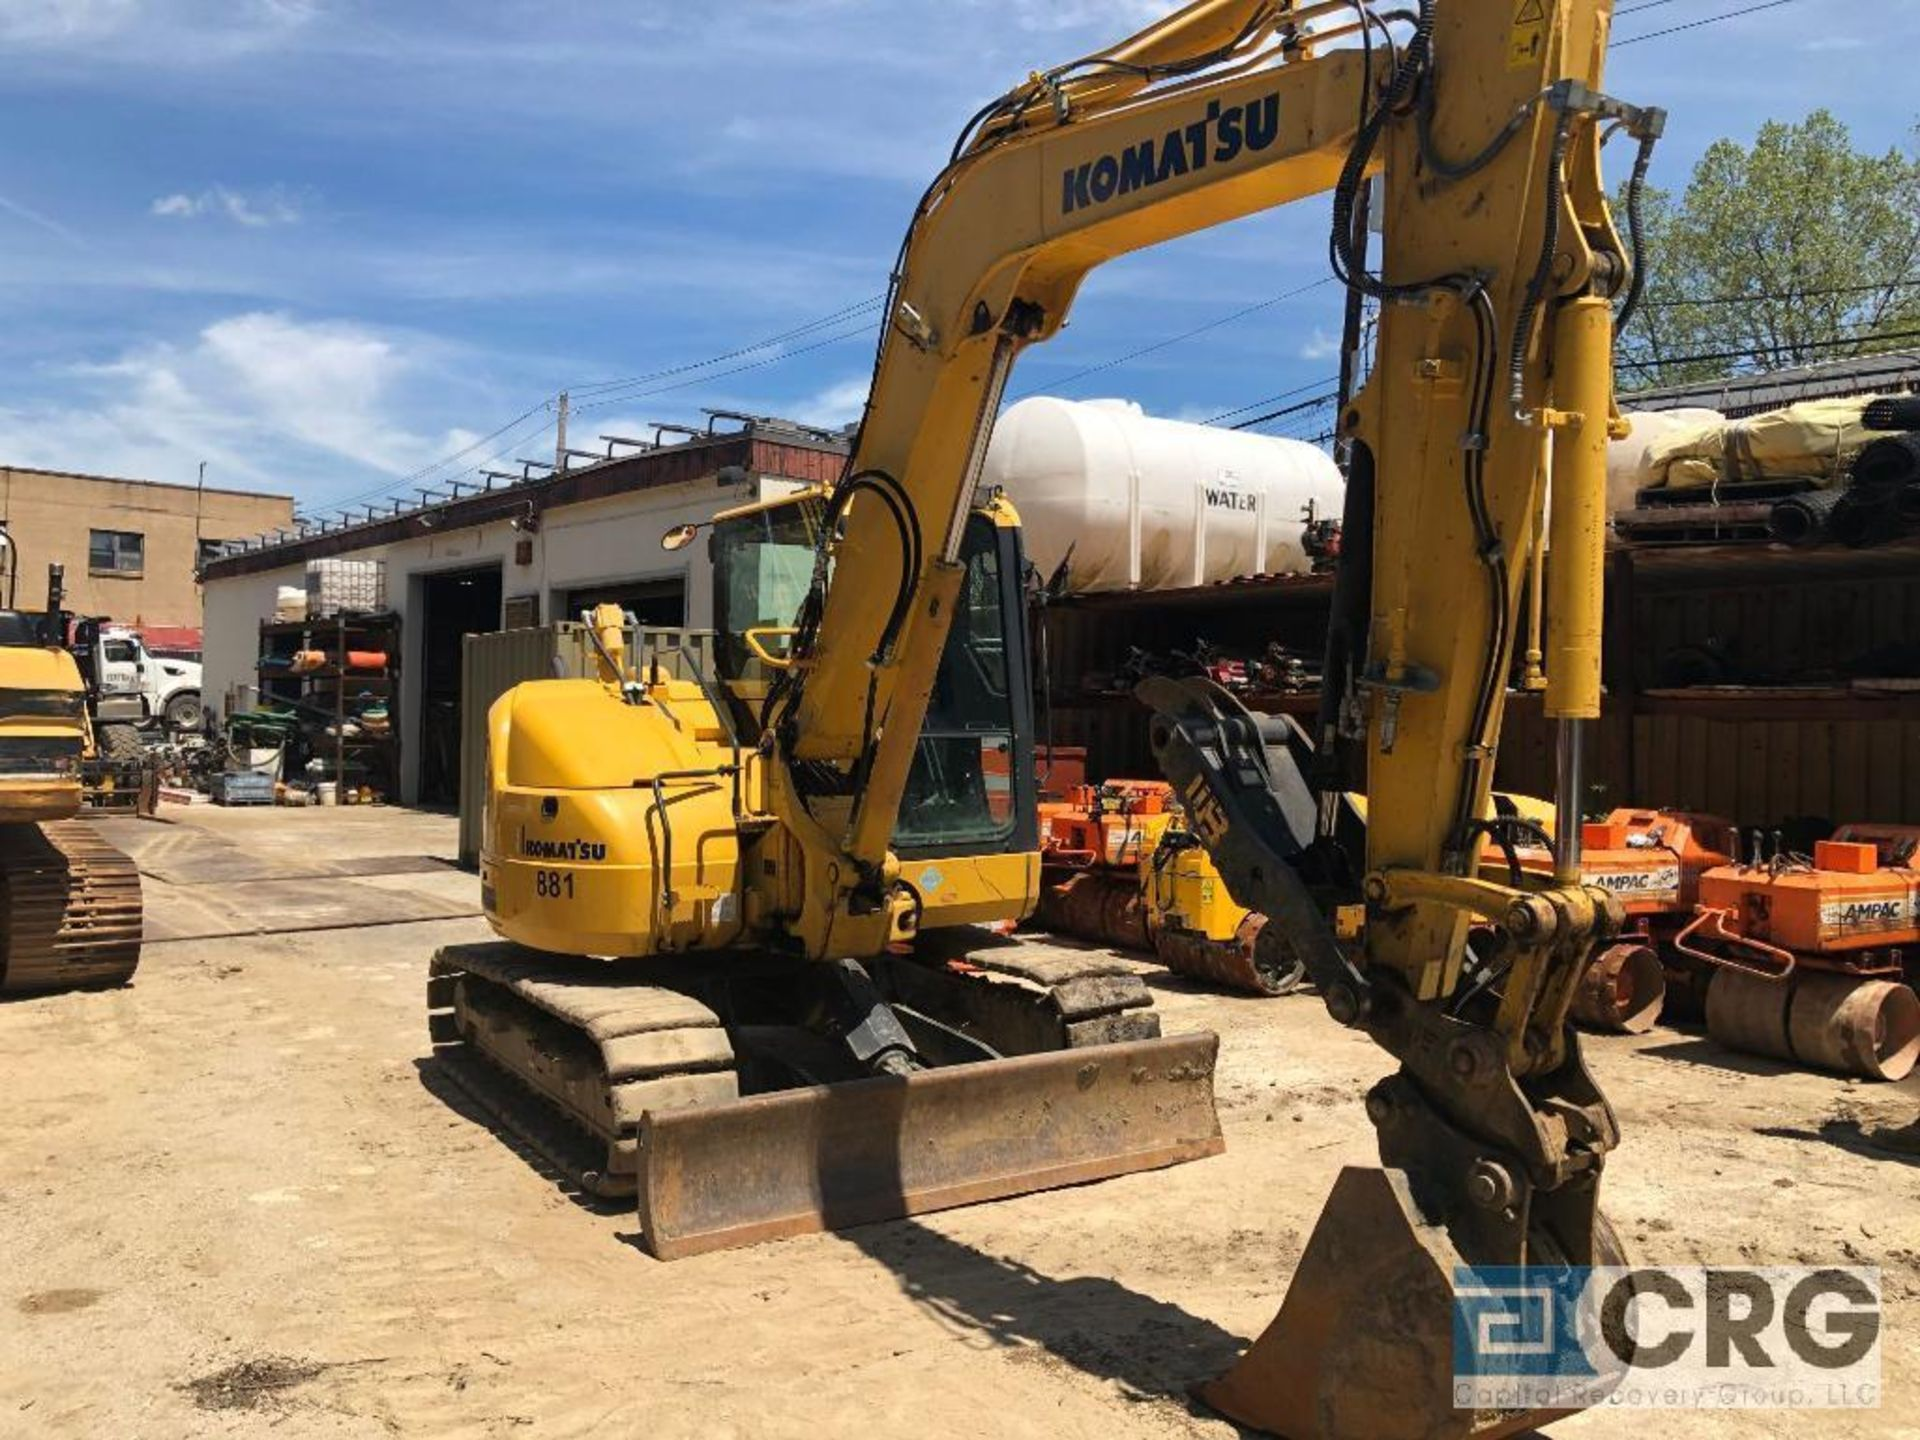 Lot 306 - 2016 Komatsu PC88MR-10 mini-excavator, 7 ft 7 in Blade, 18 in Road Liners, 11 ft. ft 2 in. Offset